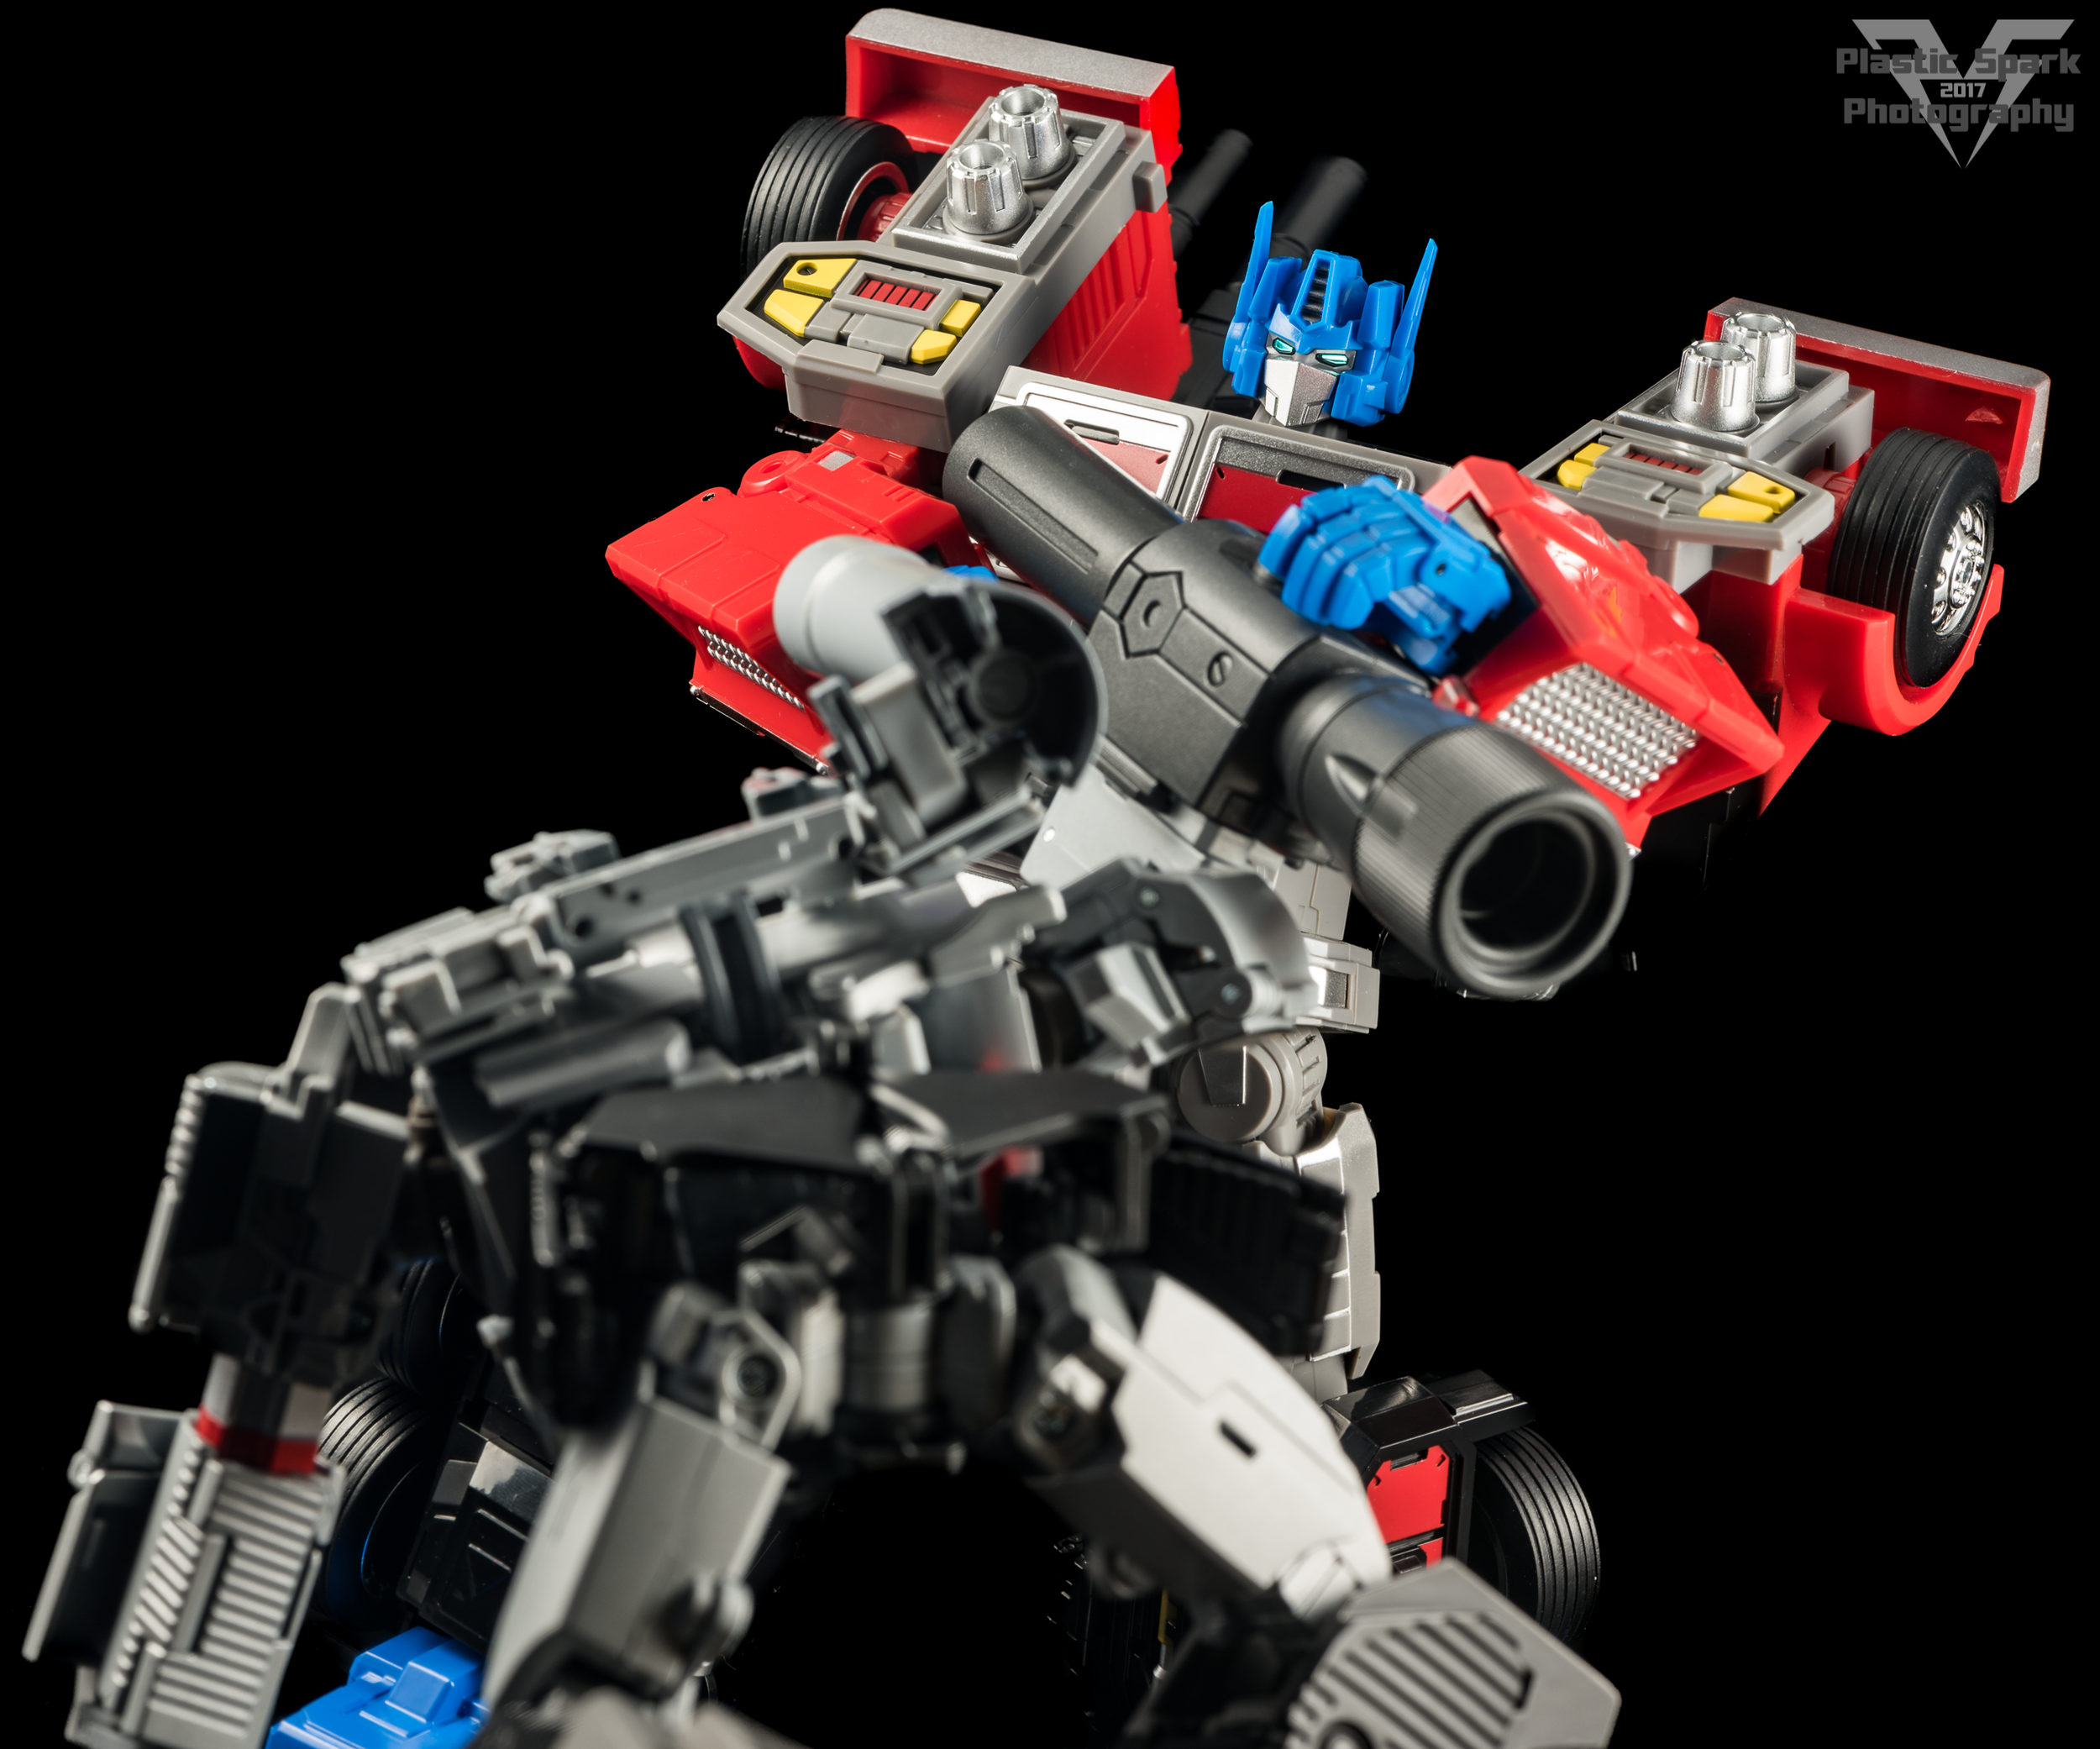 Fans-Hobby-MB-04-Gunfighter-II-(50-of-61).png